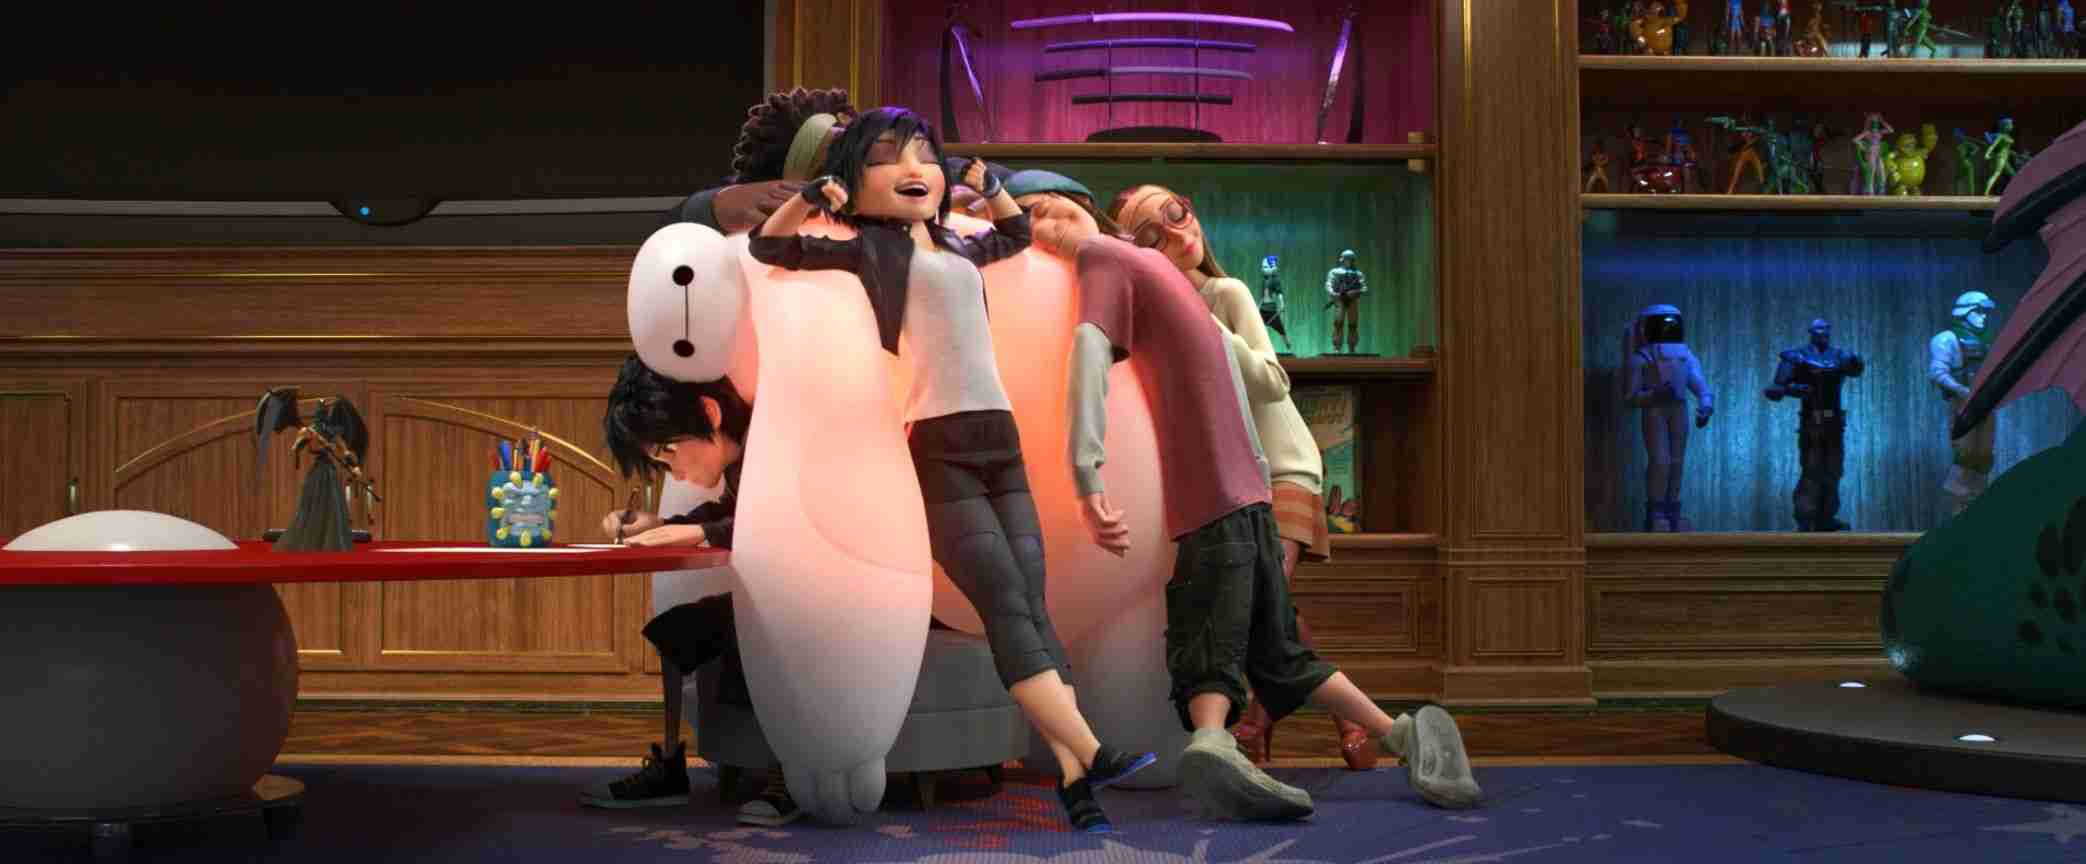 Disney's Big Hero 6 - Official US Trailer 2 - YouTube